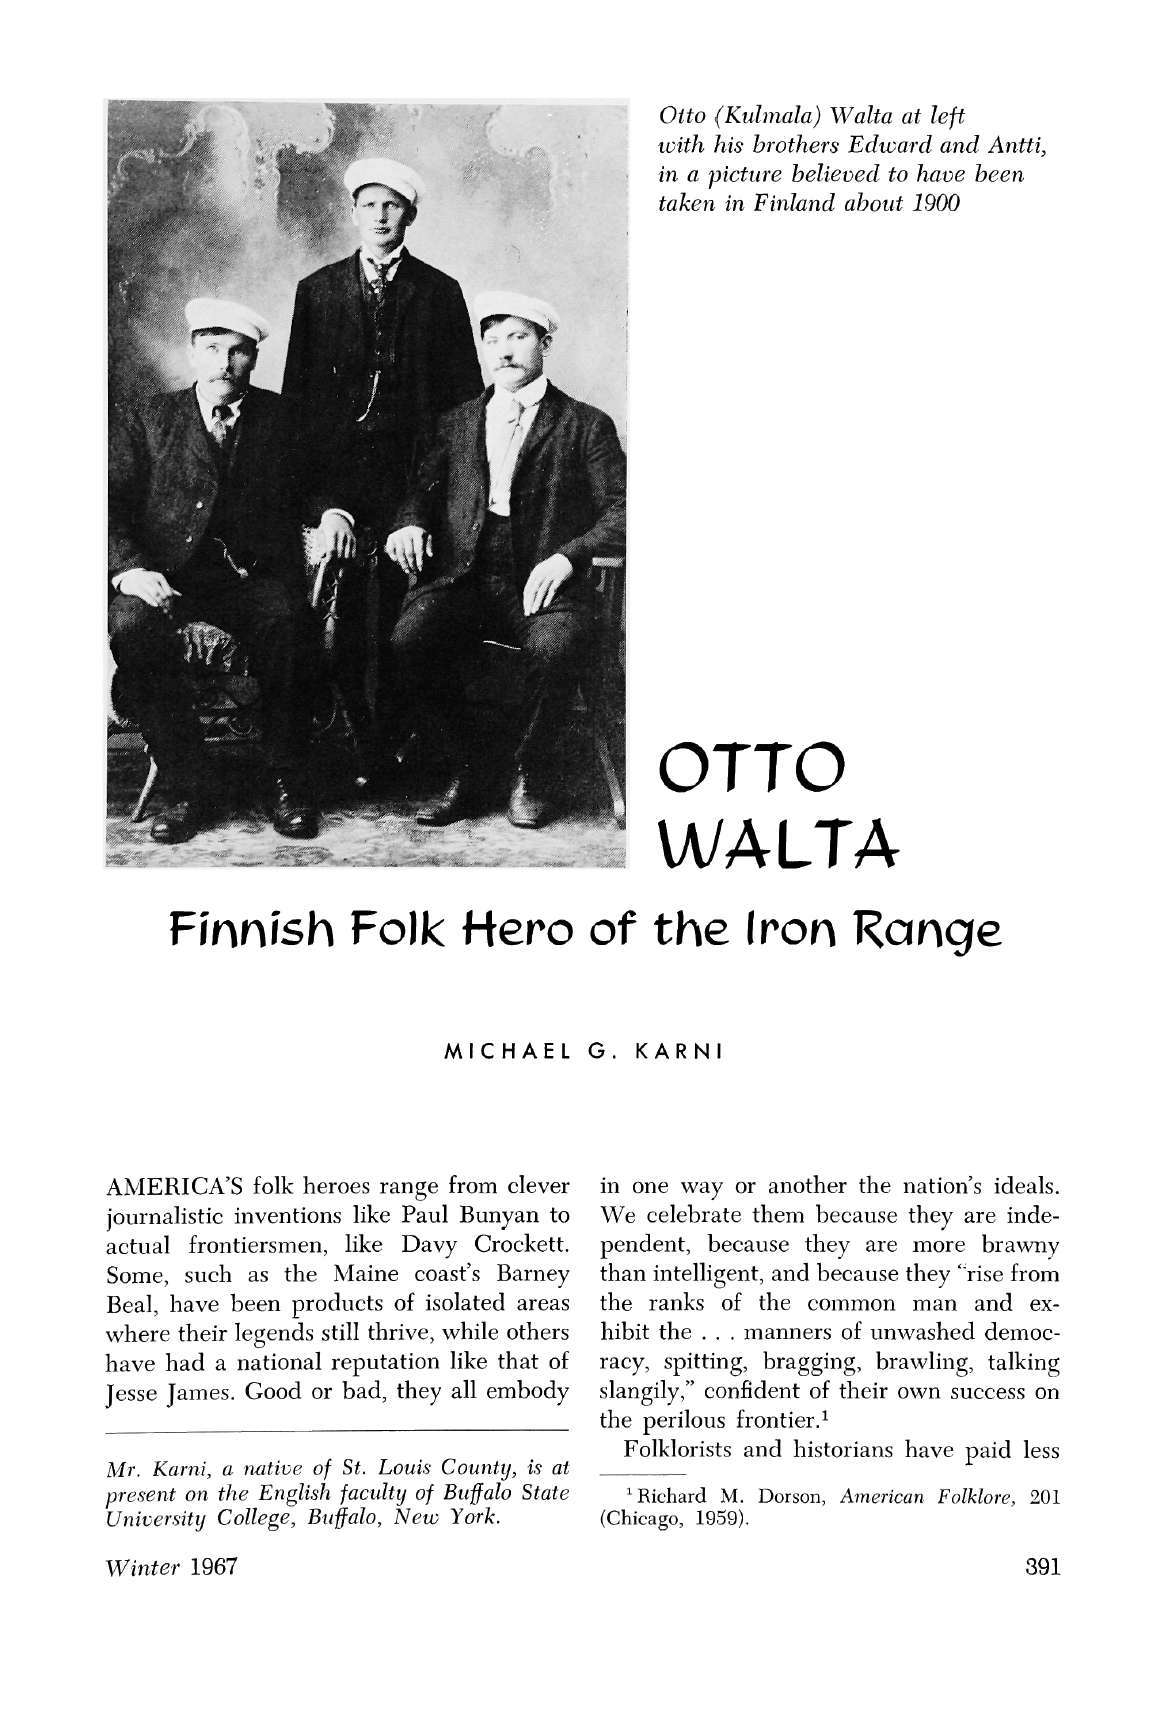 Otto (Kulmala) Walta at left with his brothers Edward and Antti, in a picture believed to have been taken in Finland about 1900 OTTO WALT A Finnish Folk Hero of the Iron Range MICHAEL G.